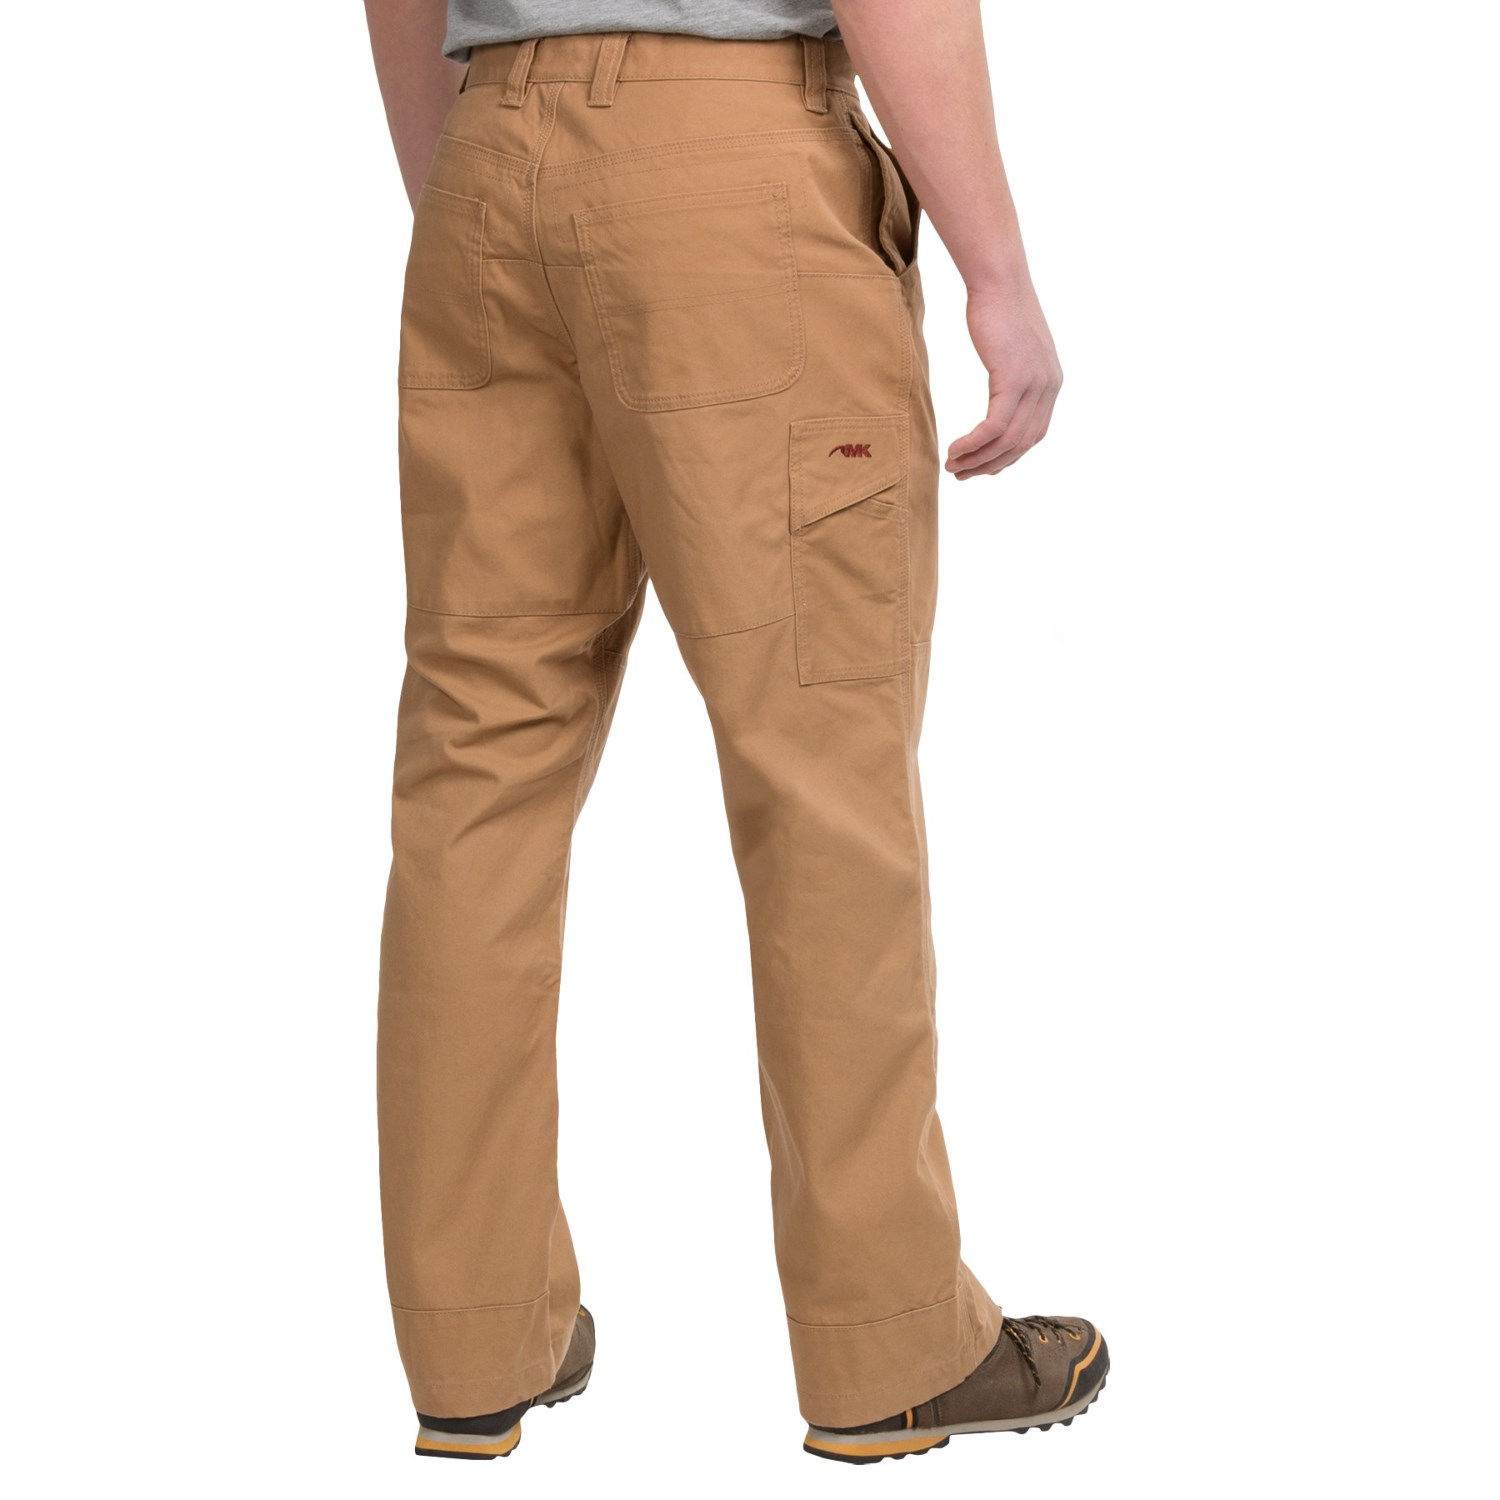 Shop for and buy mountain khakis online at Macy's. Find mountain khakis at Macy's.